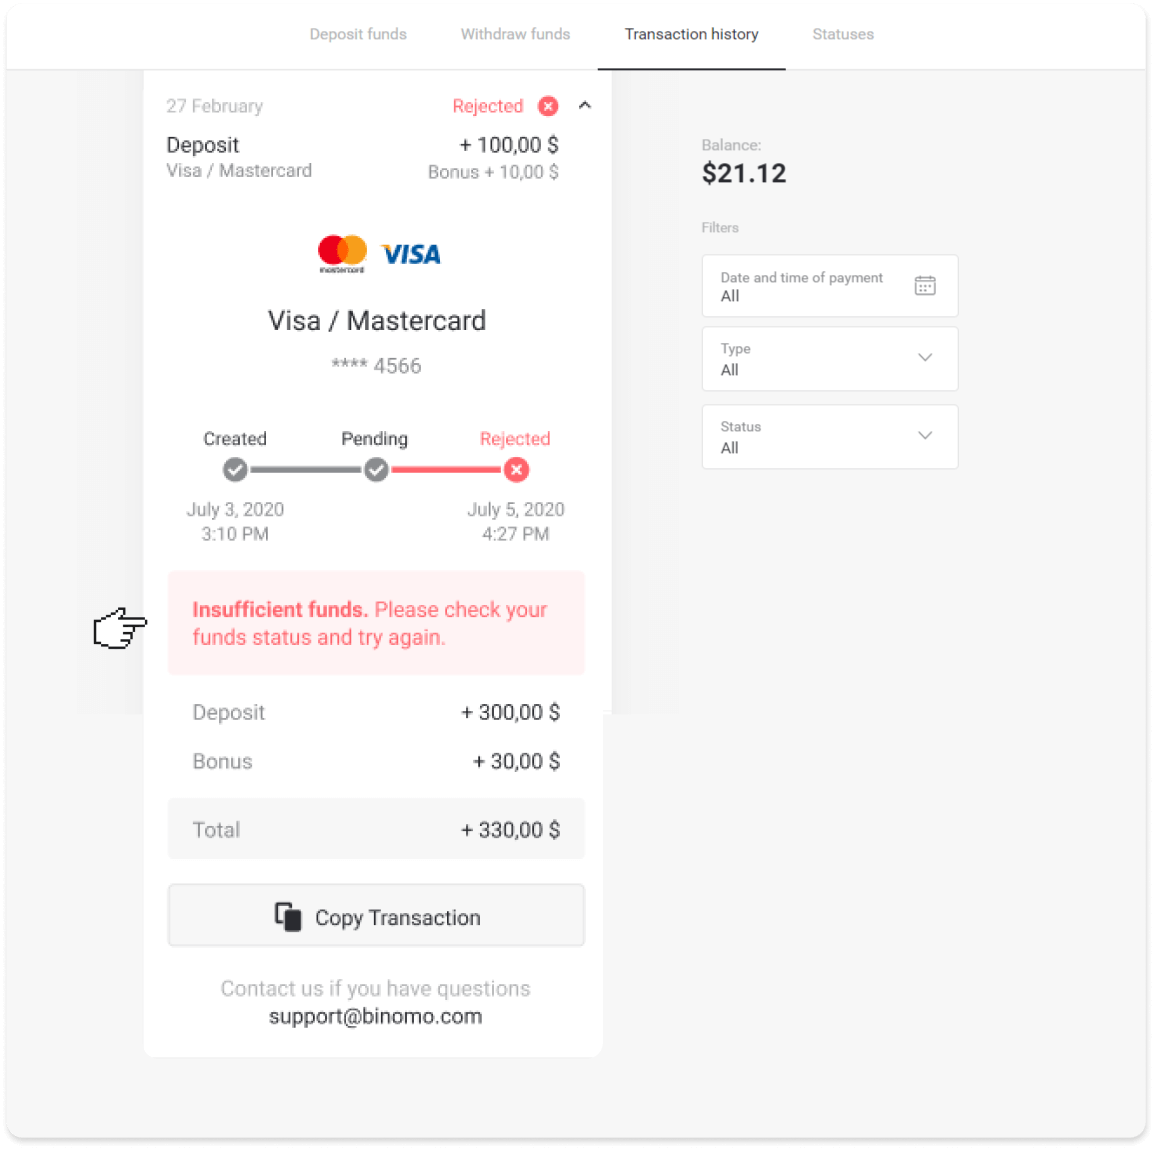 How to Login and Deposit Funds in Binomo